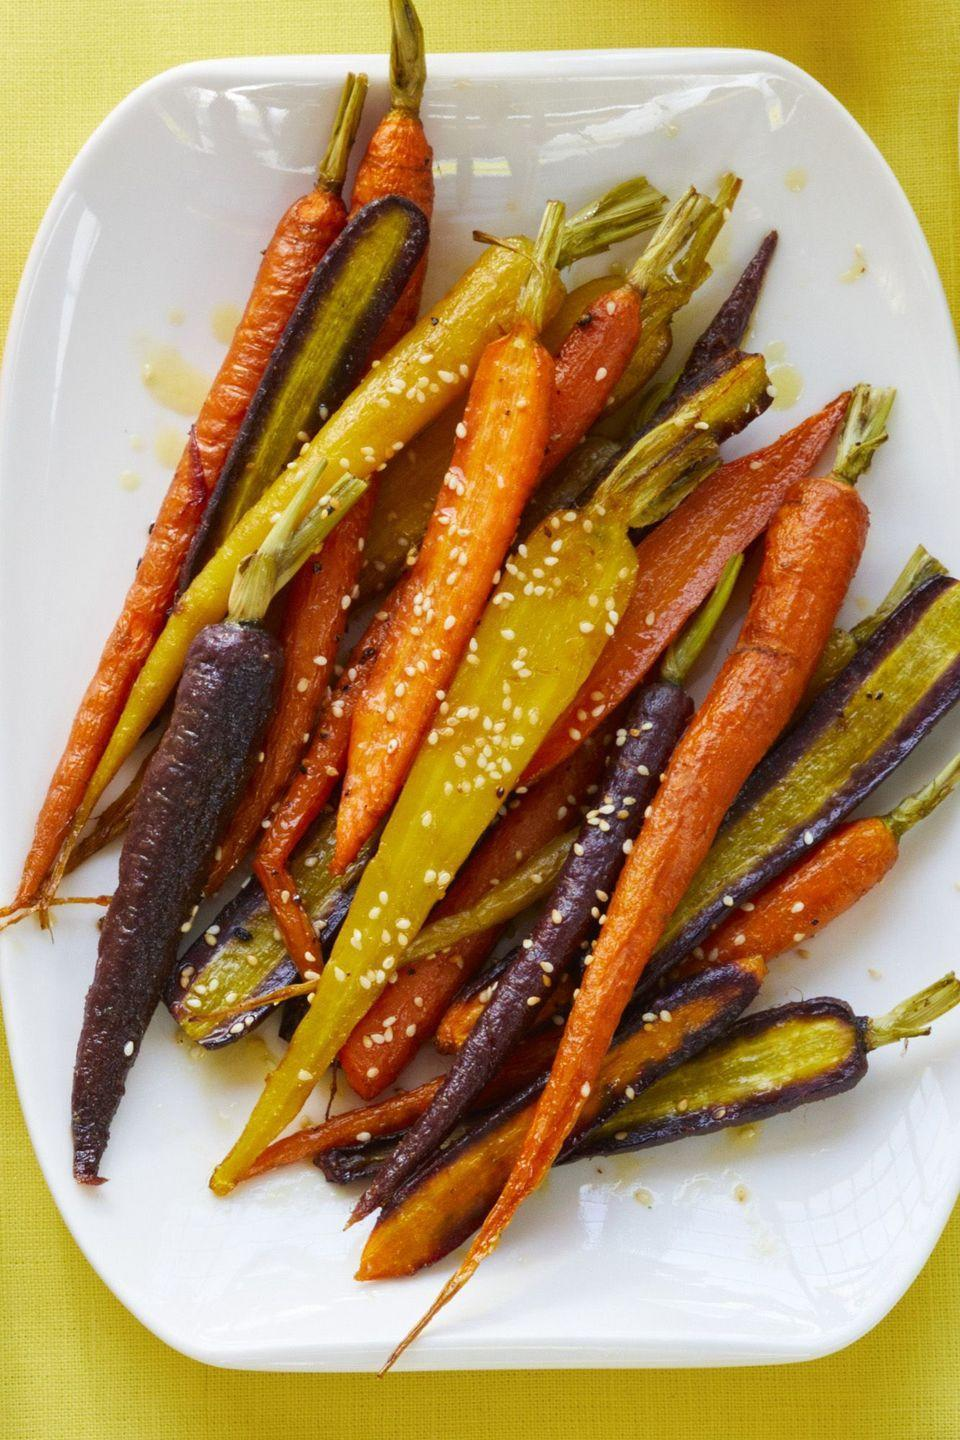 "<p>Not all glazed carrots need to be sweet — tart and tangy carrots can be just as delicious. </p><p><em><a href=""https://www.womansday.com/food-recipes/food-drinks/a19121978/roasted-carrots-with-citrus-vinaigrette-recipe/"" rel=""nofollow noopener"" target=""_blank"" data-ylk=""slk:Get the recipe from Woman's Day »"" class=""link rapid-noclick-resp"">Get the recipe from Woman's Day »</a></em></p>"